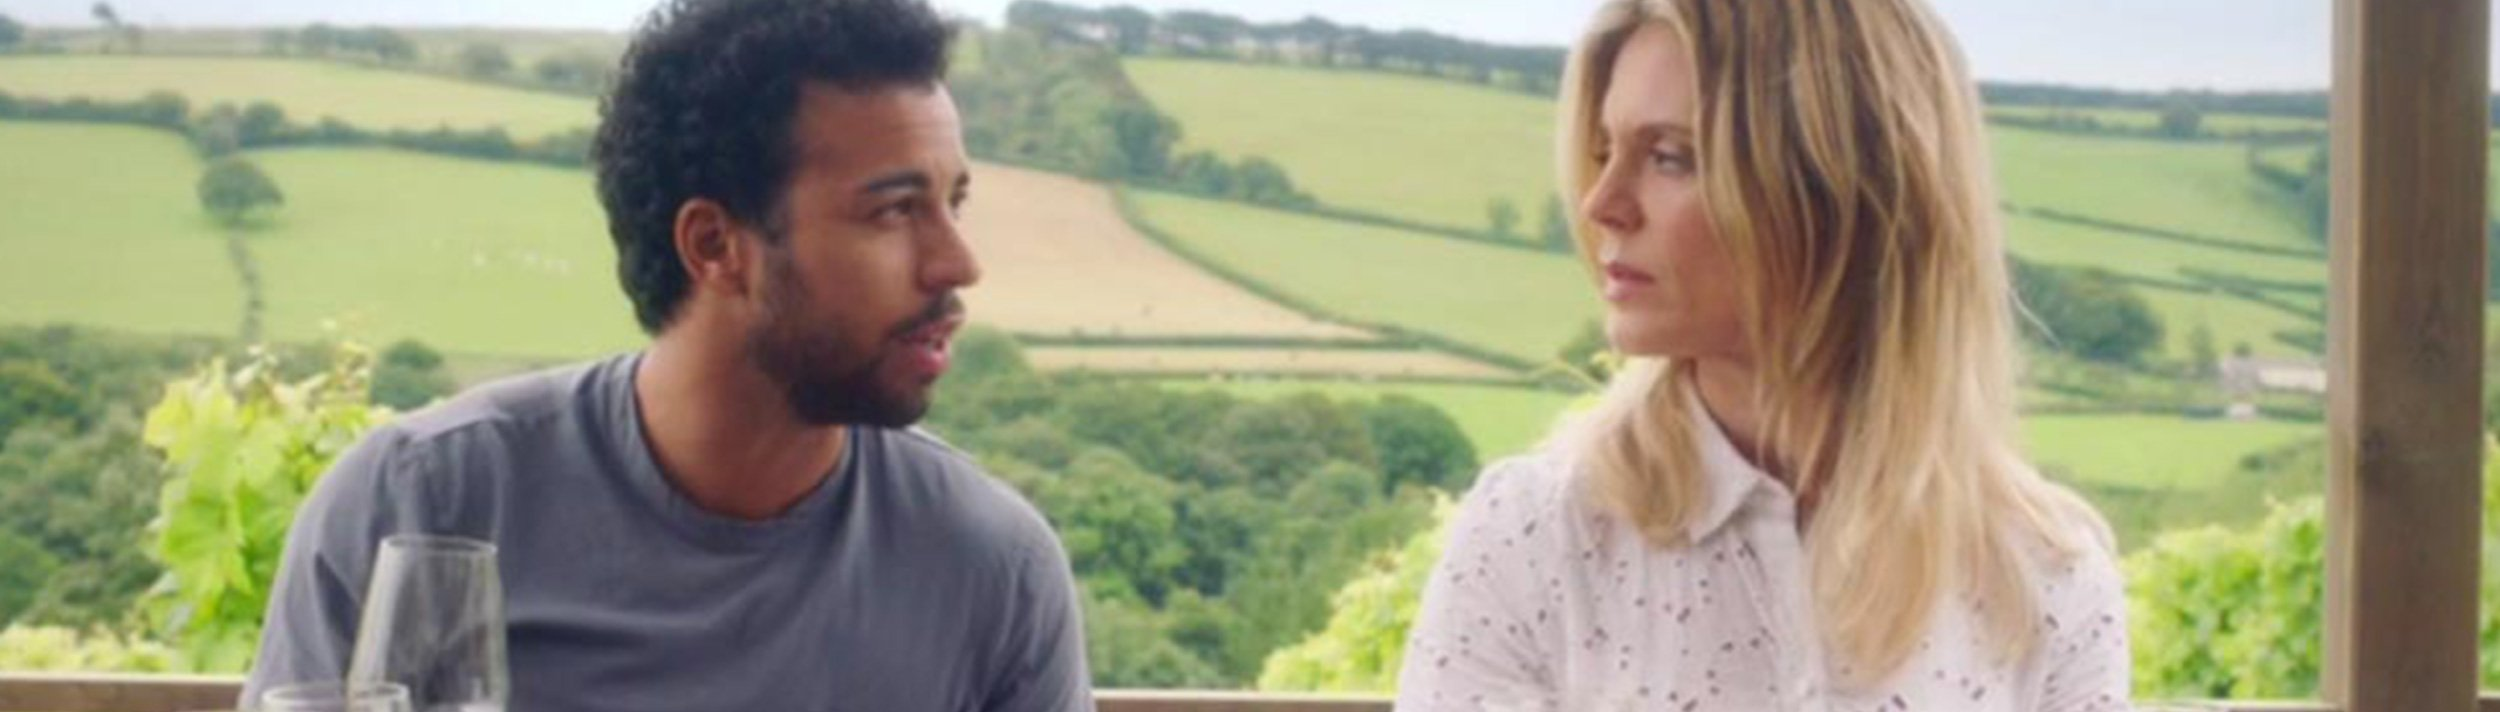 Sky One's Delicious filming in the vineyard feature